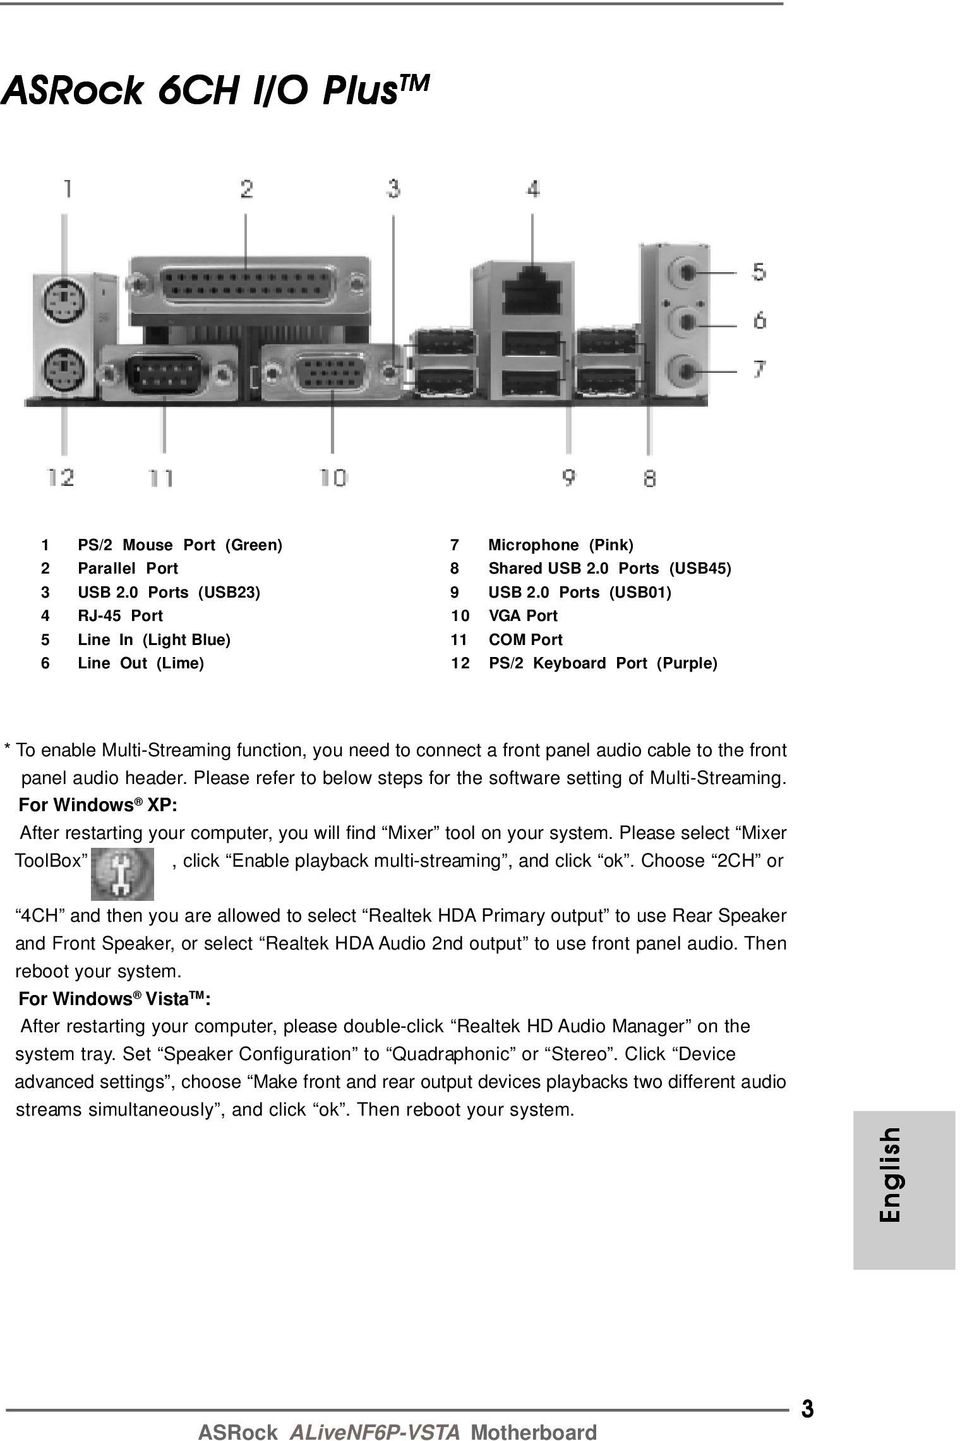 audio cable to the front panel audio header. Please refer to below steps for the software setting of Multi-Streaming.